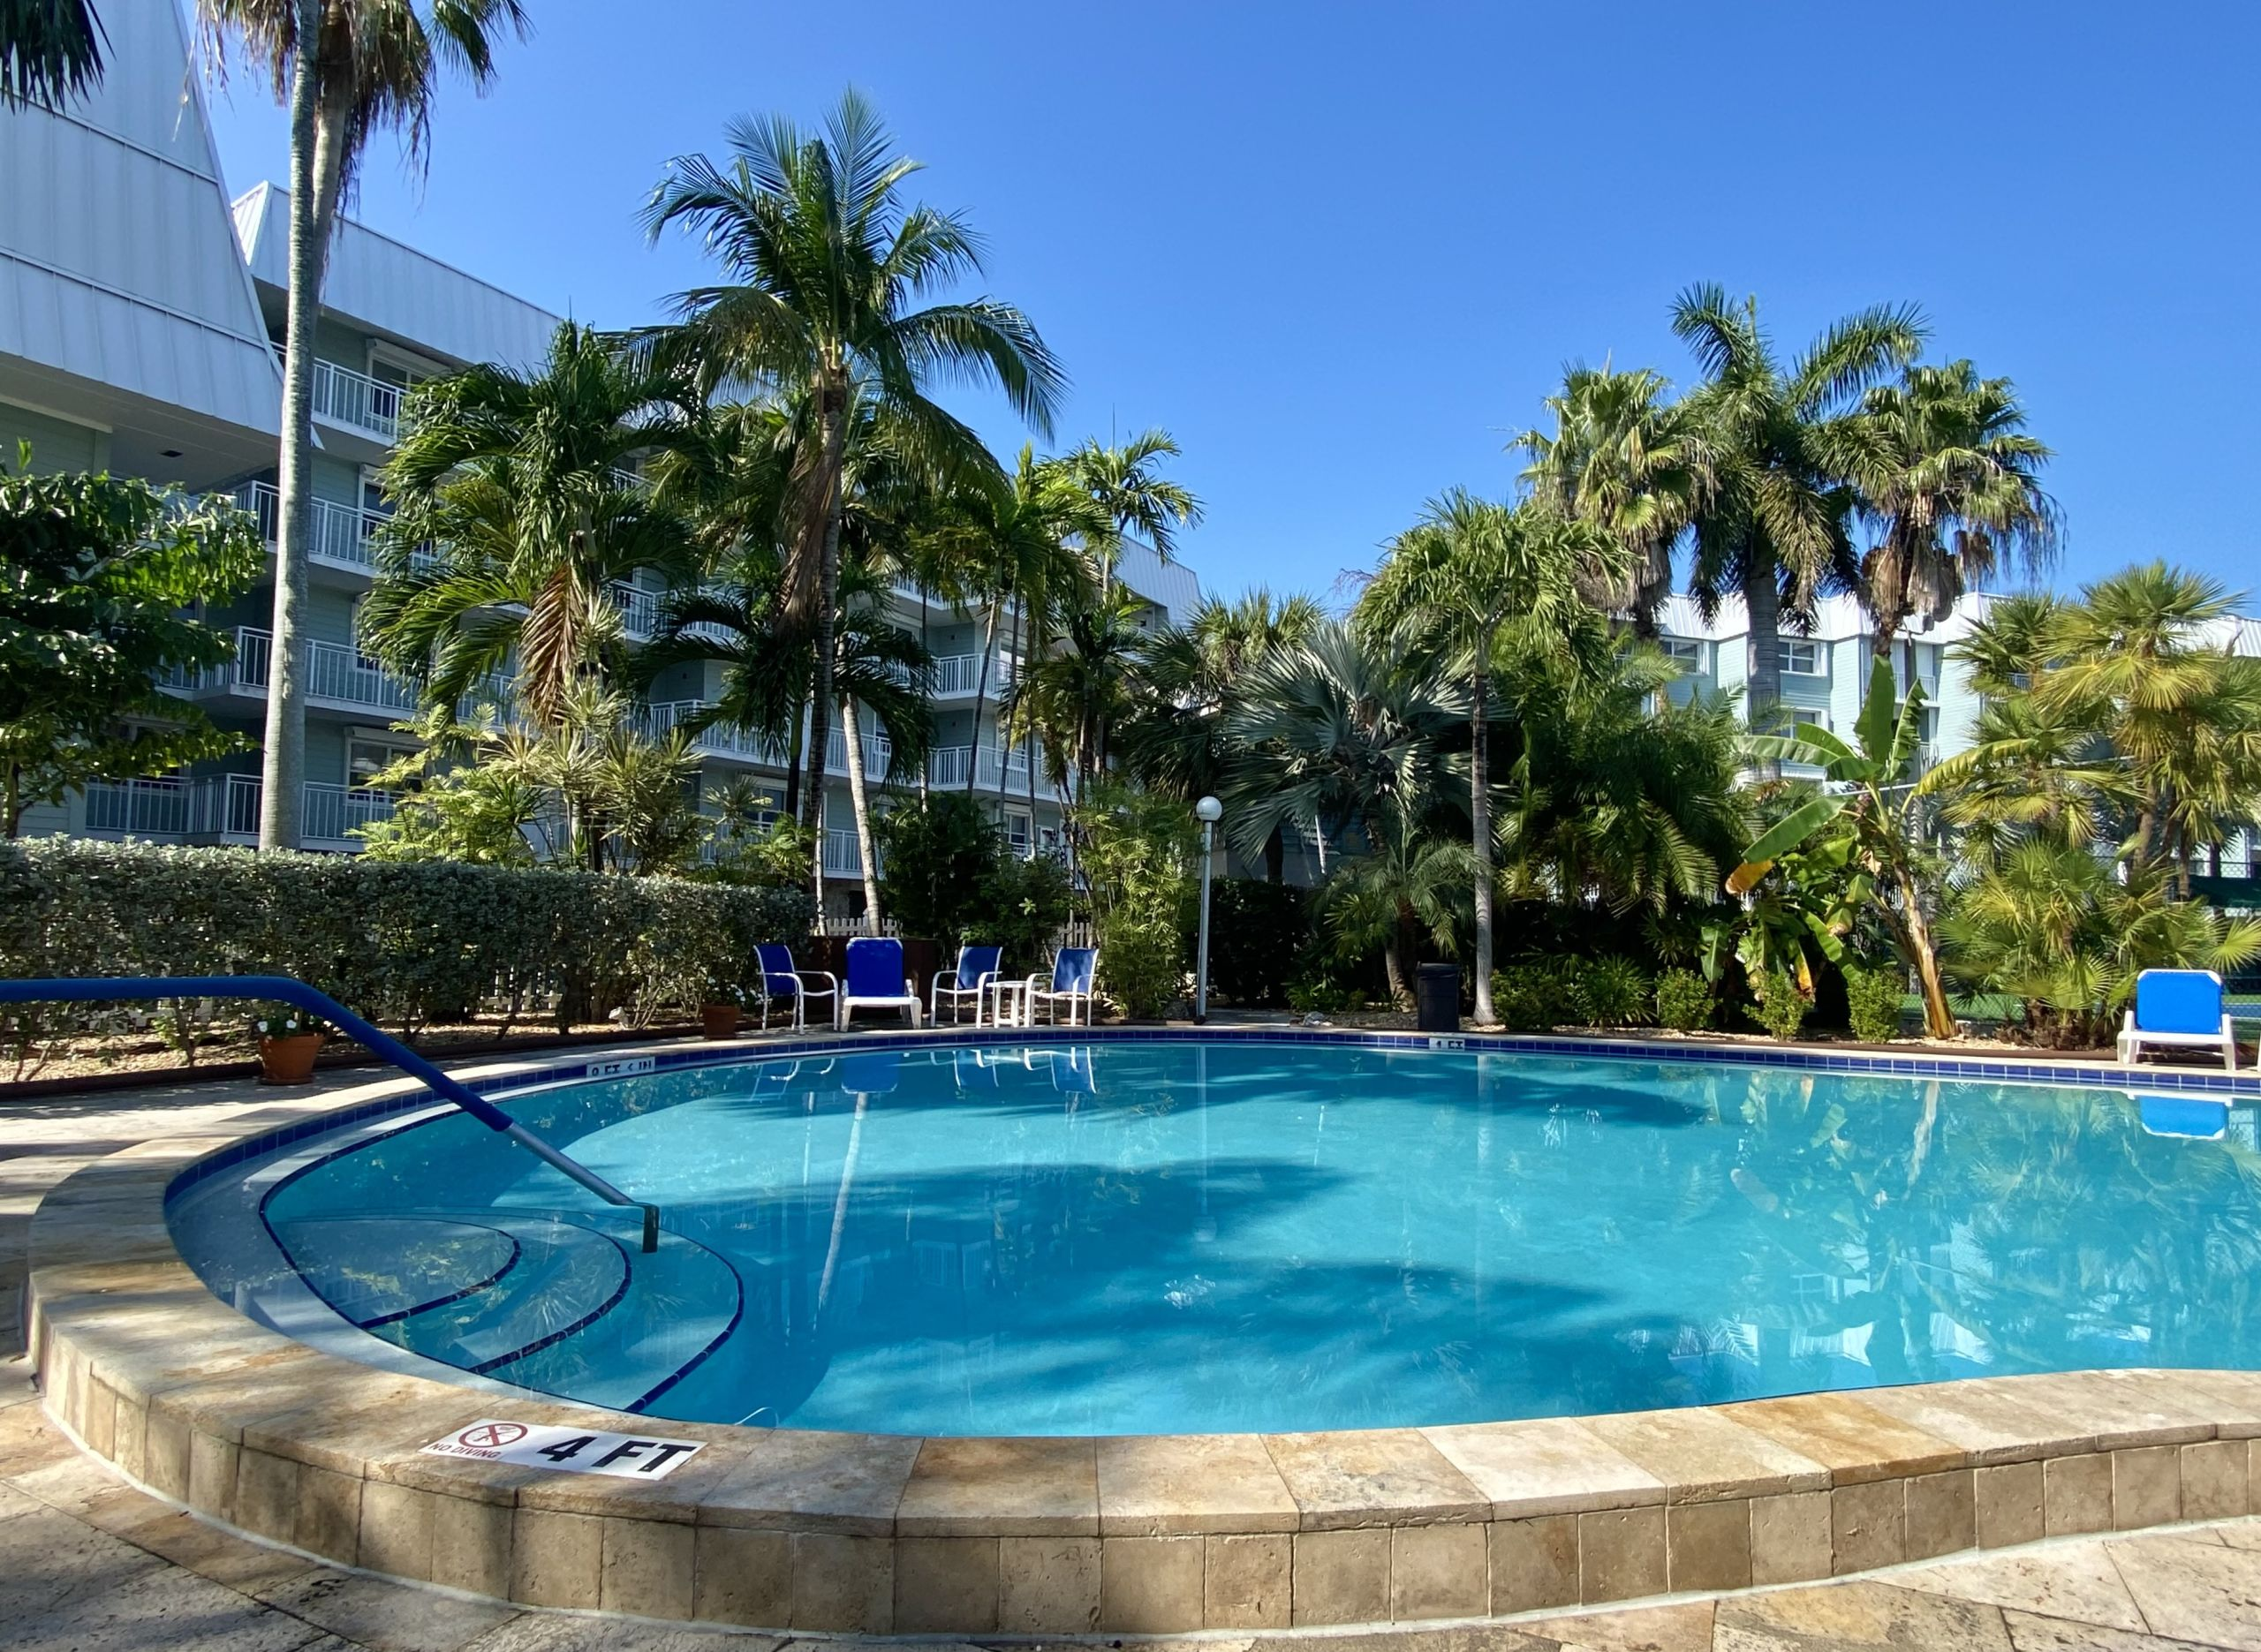 Exceptional Smathers Beach Furnished Condo